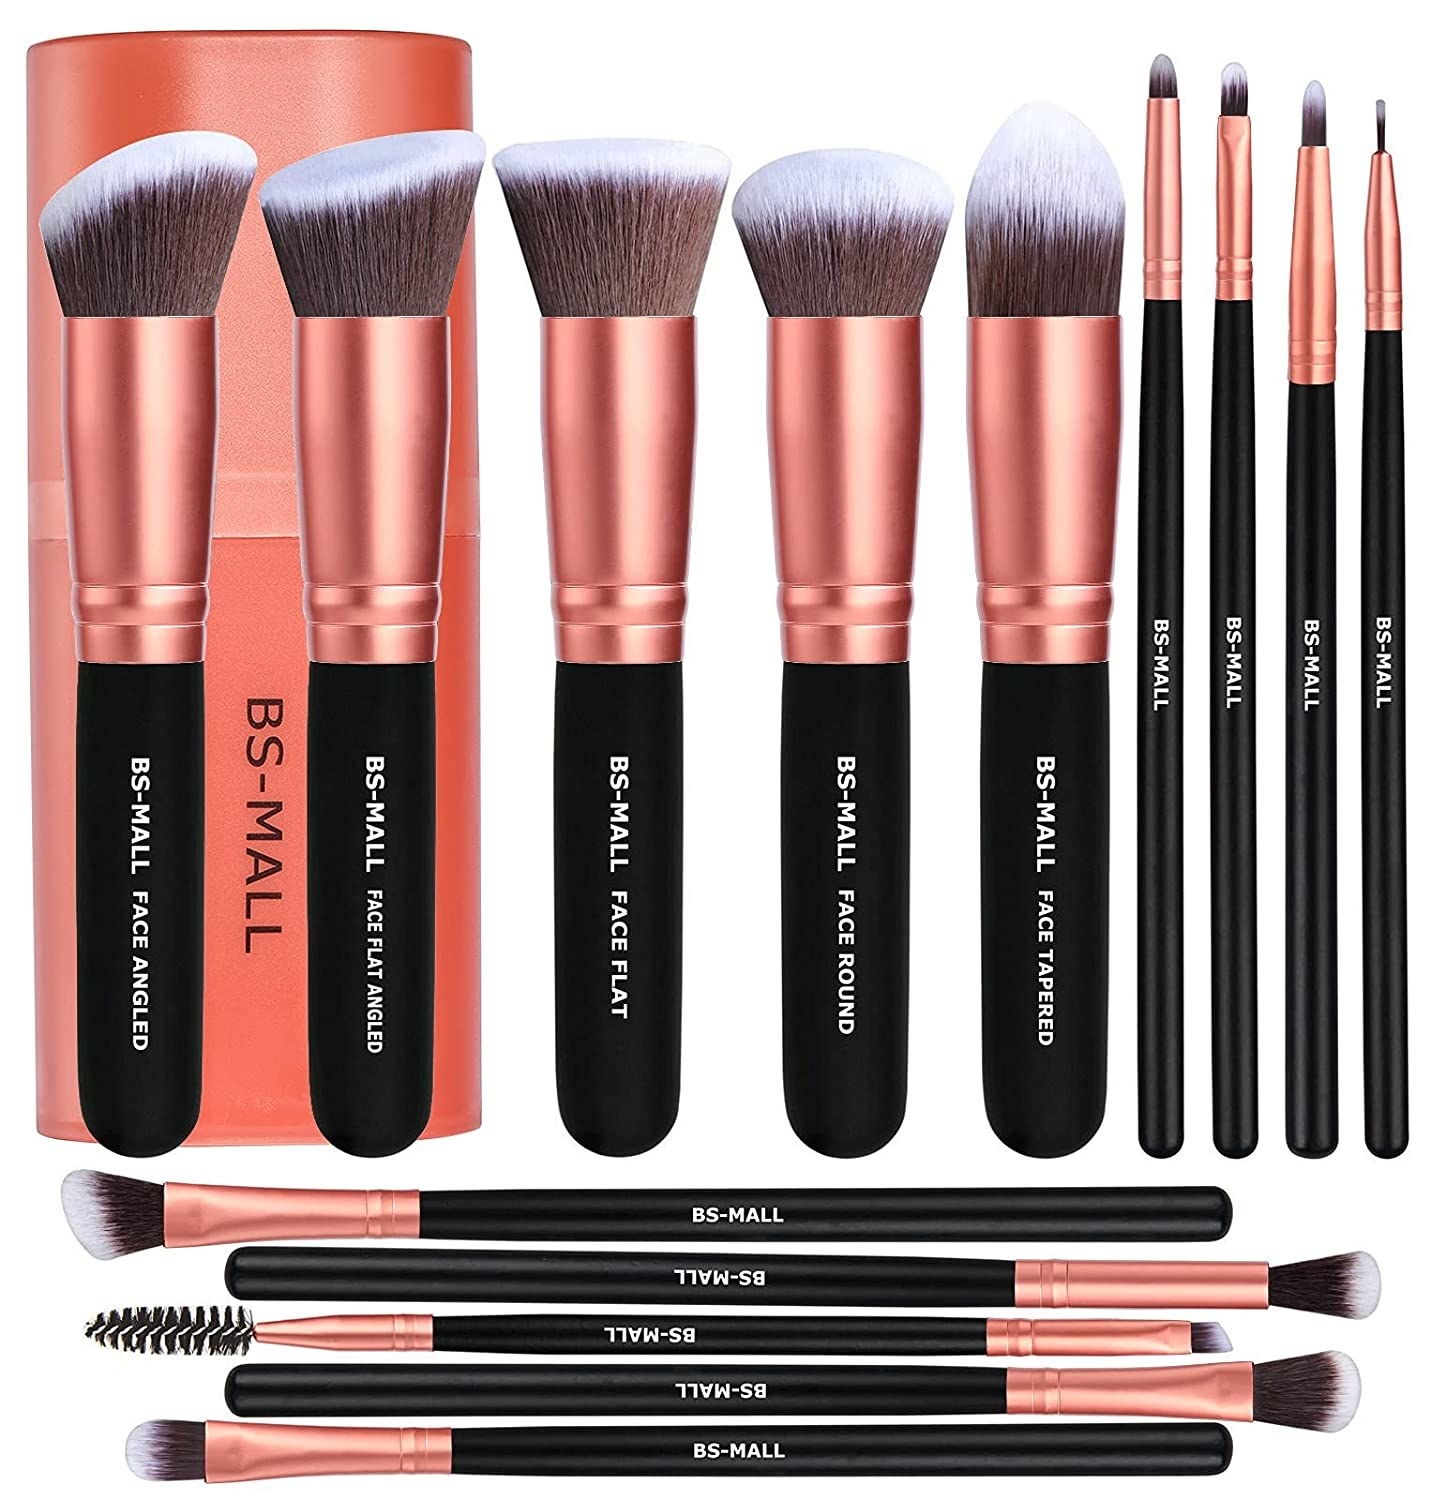 The rose gold and black set of brushes with a carrying case